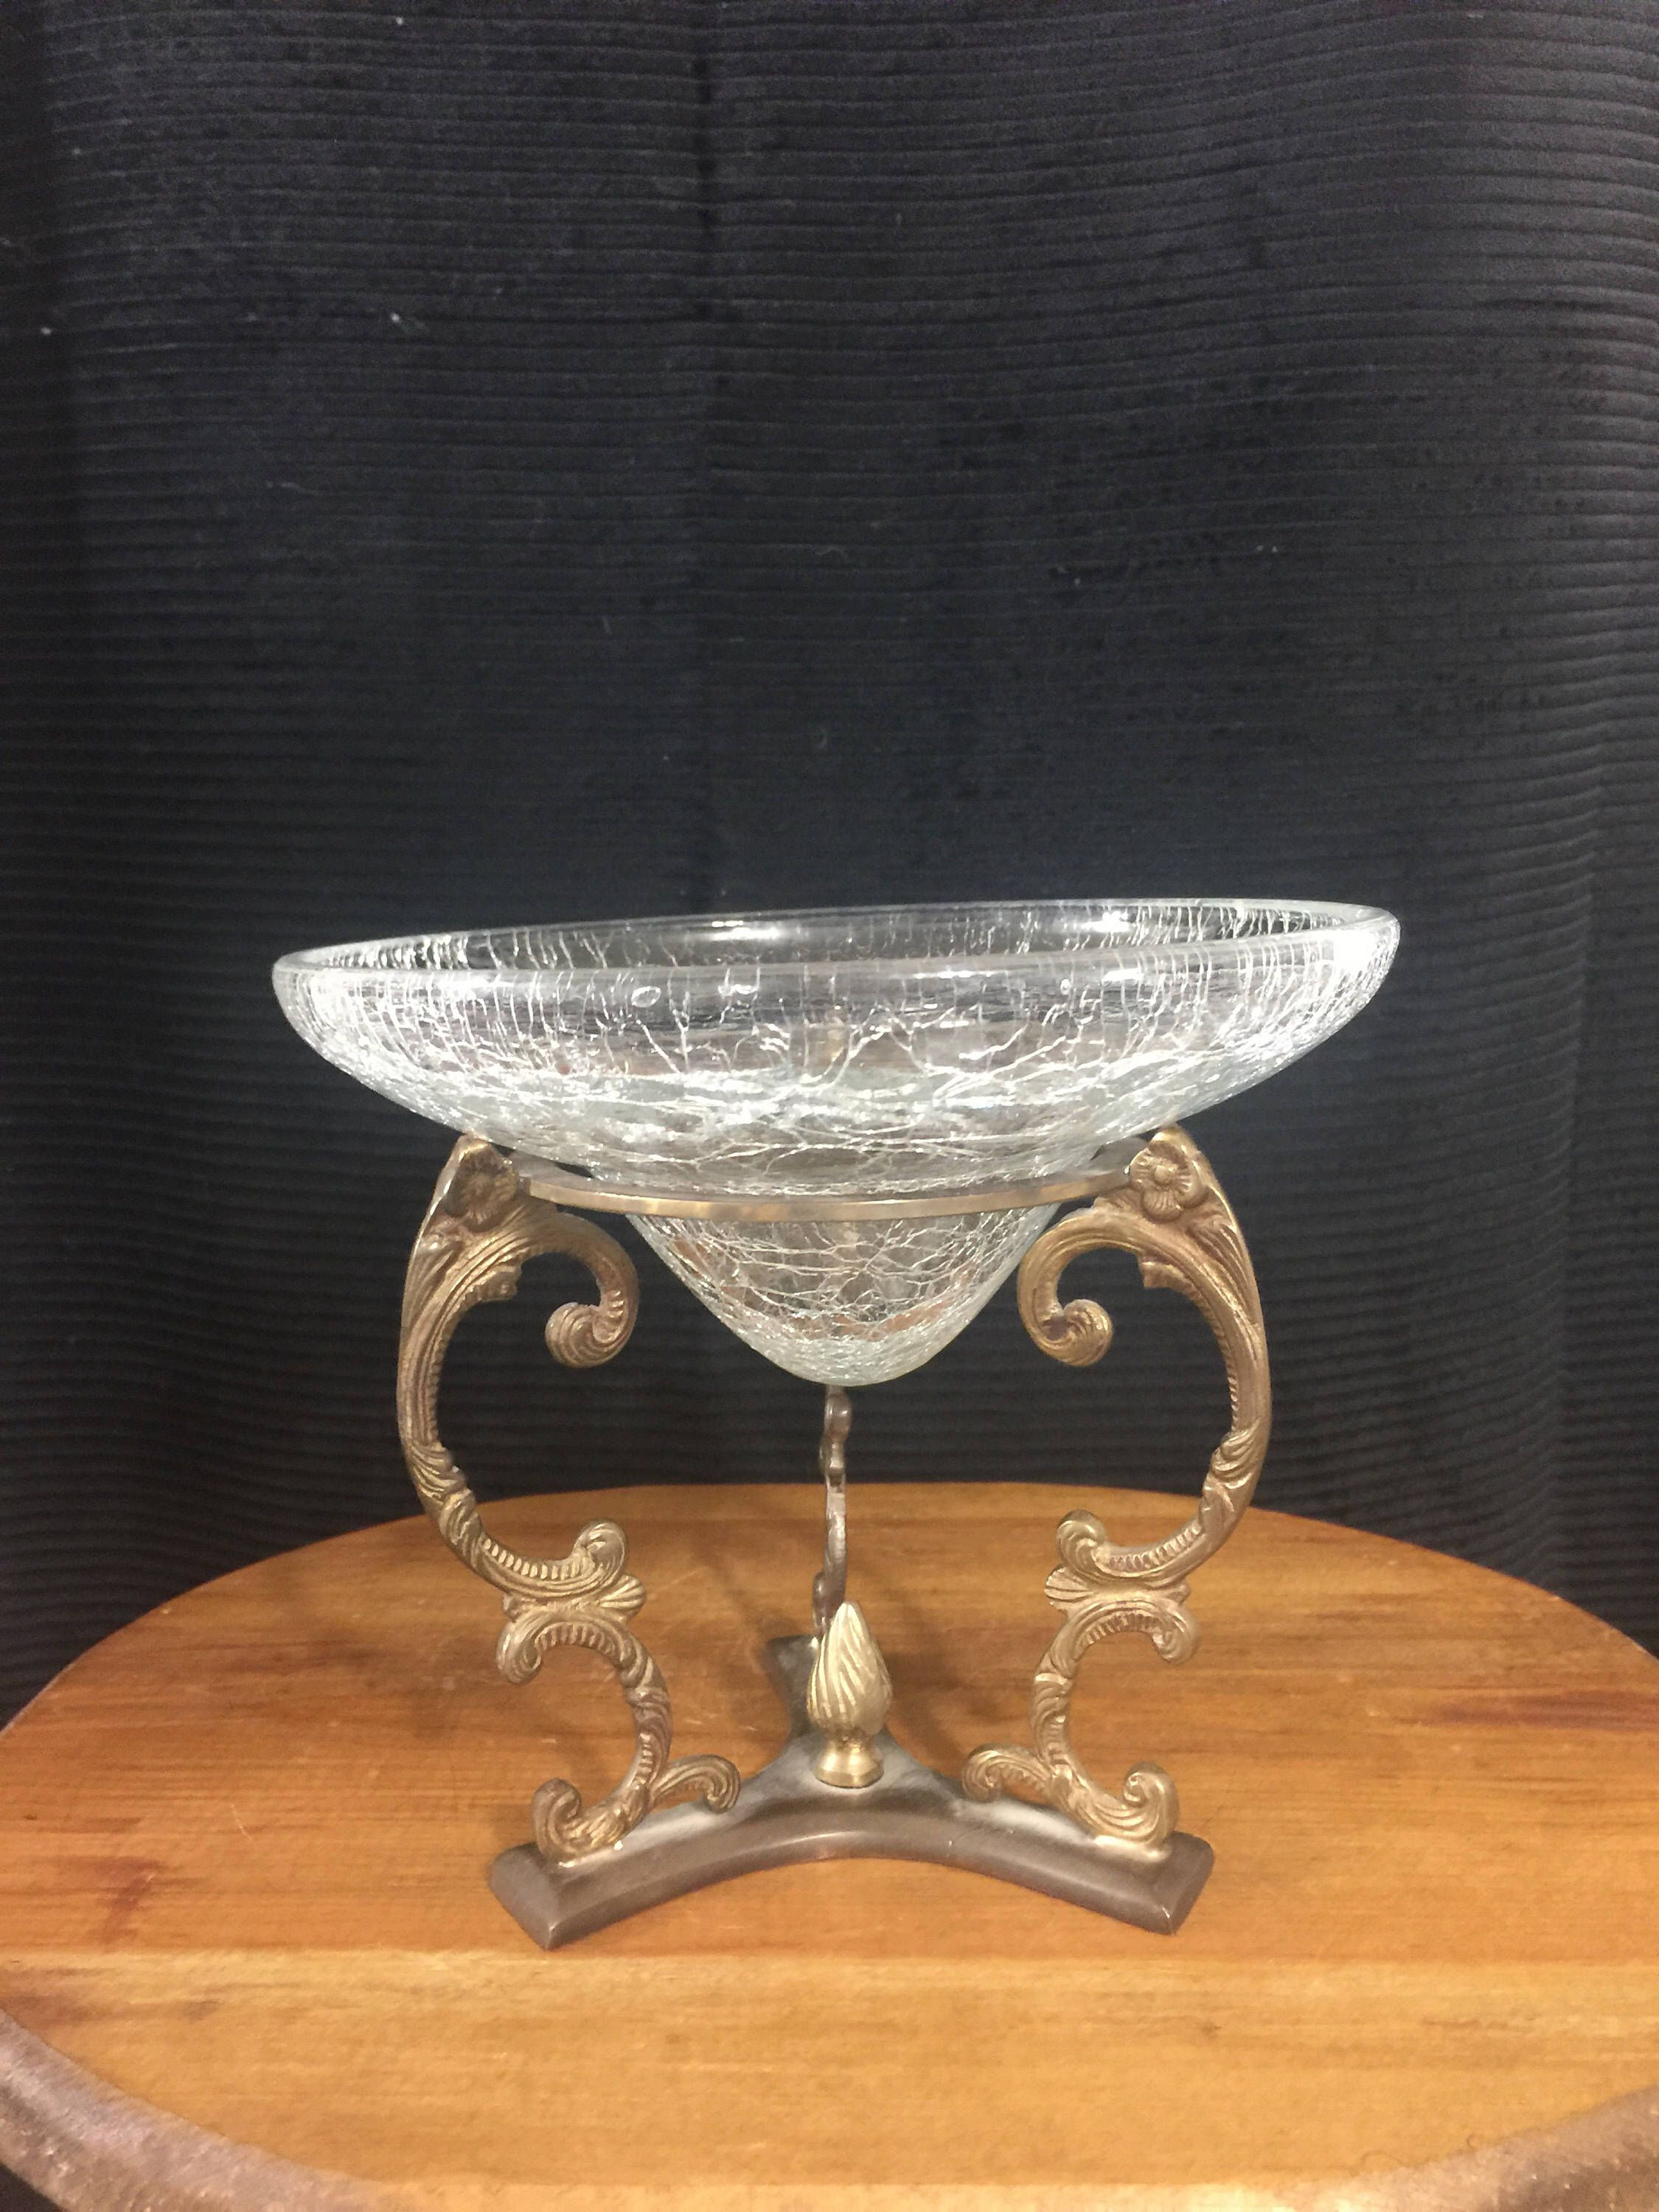 Vintage brass pedastal with heavy cracked glass bowl